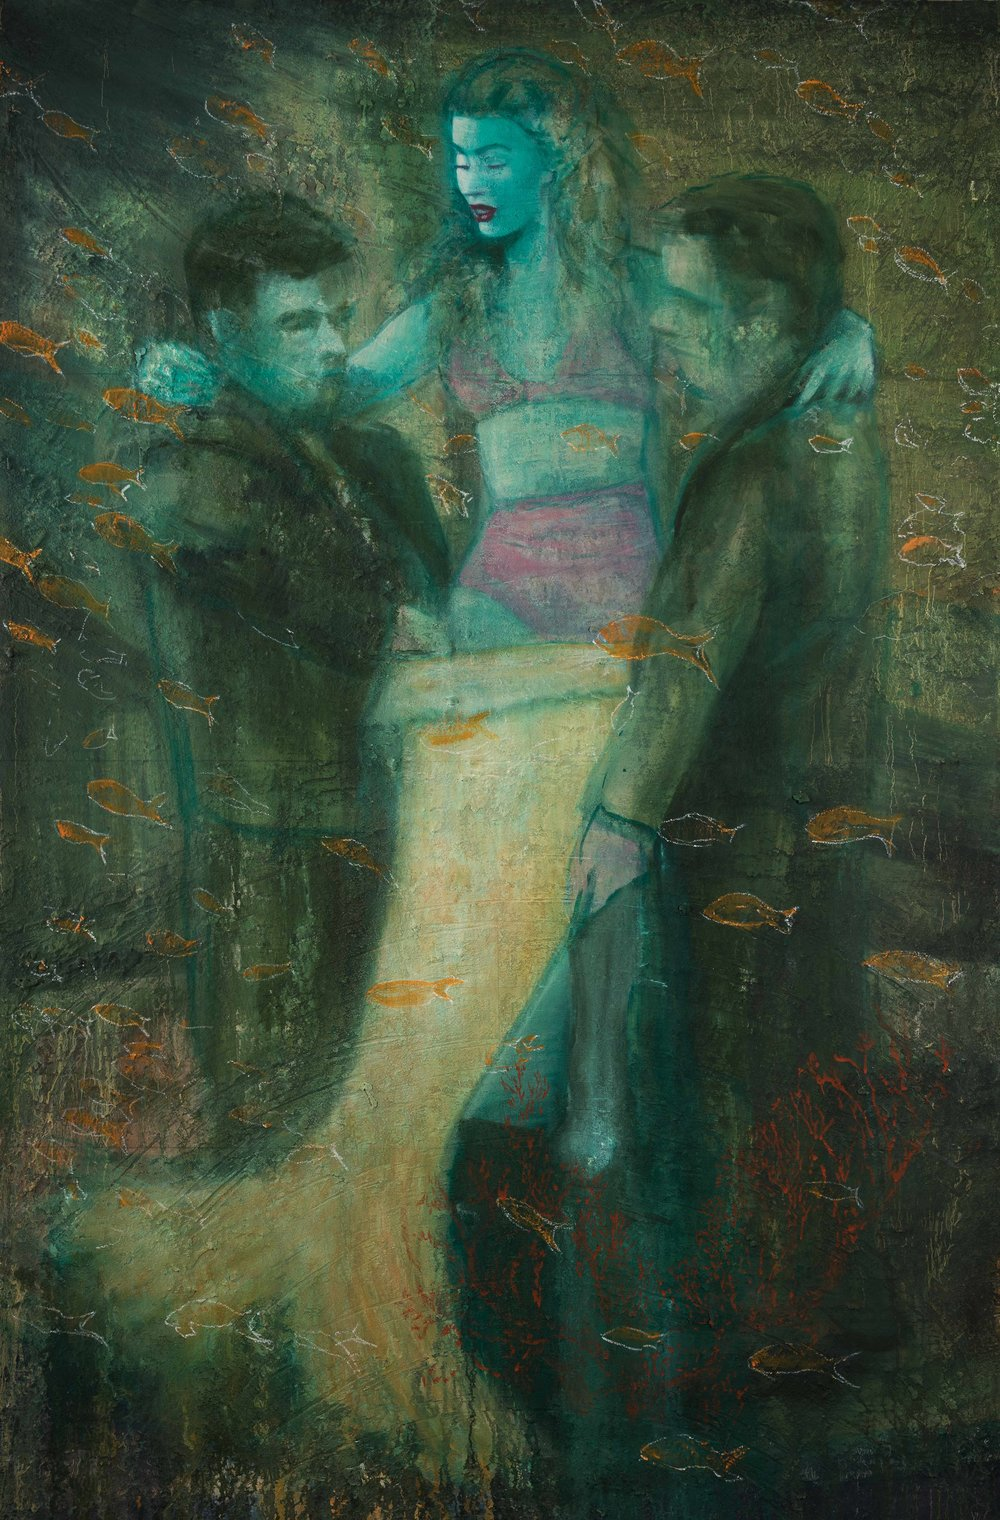 The Mermaid   oil + sand on canvas  96x56""